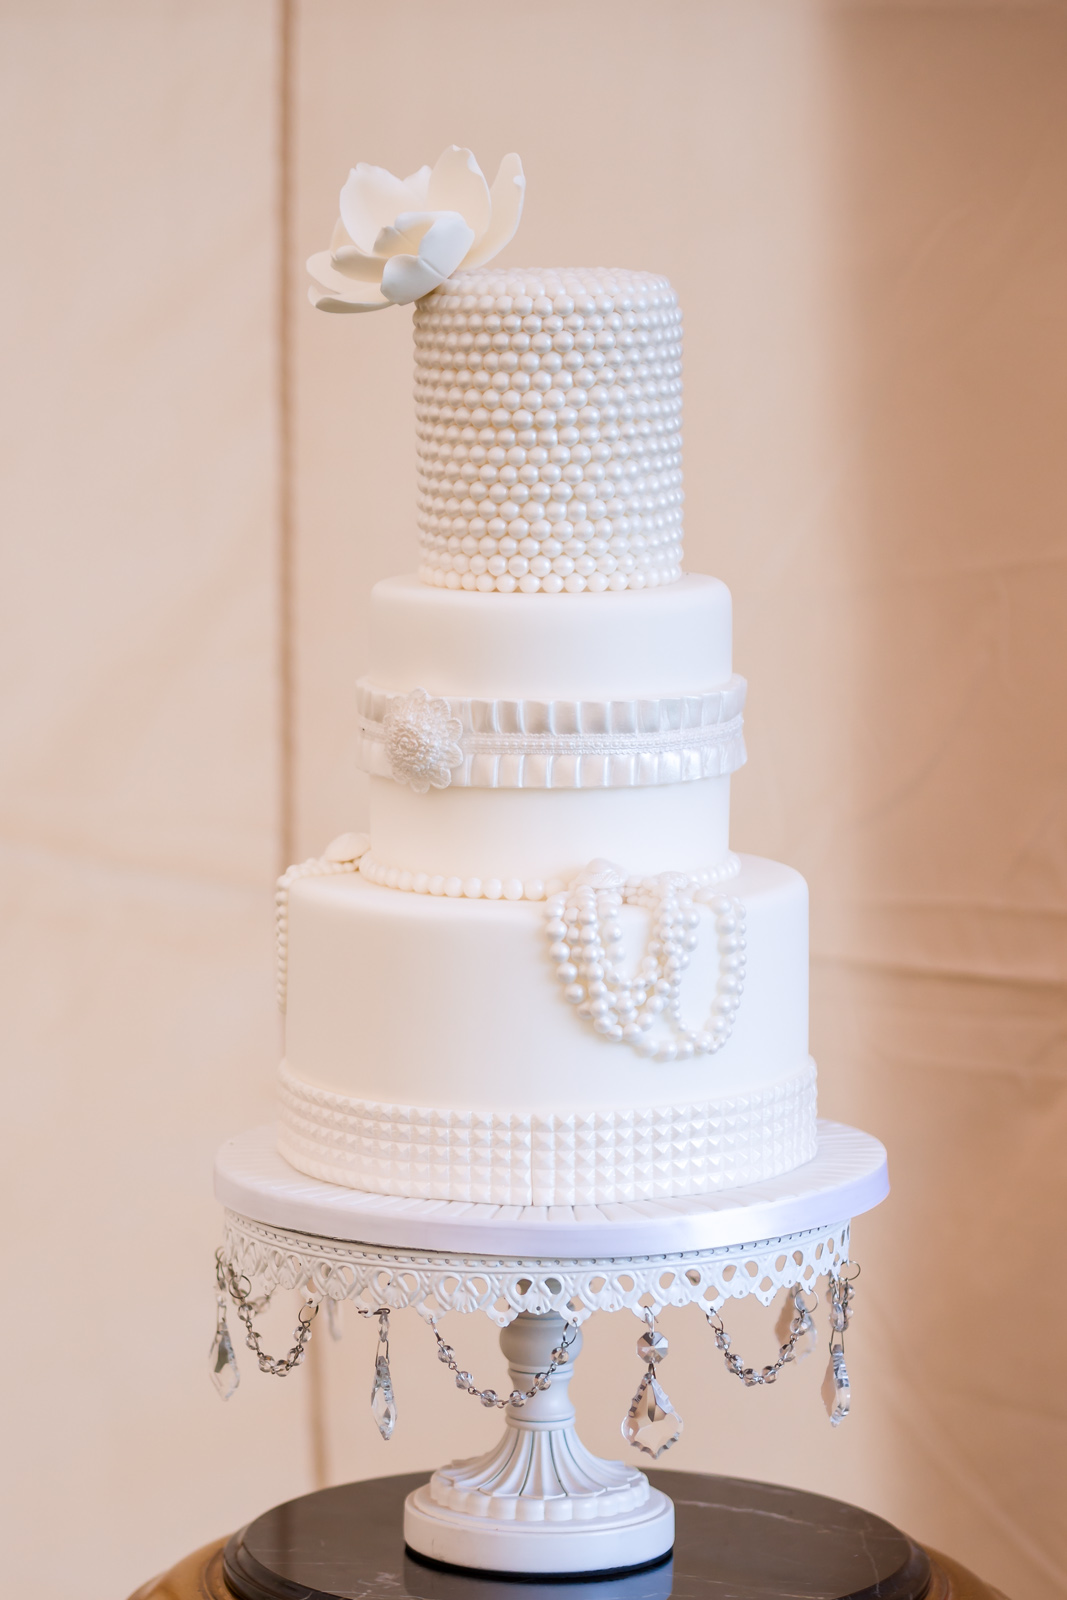 Elegant all white wedding cake